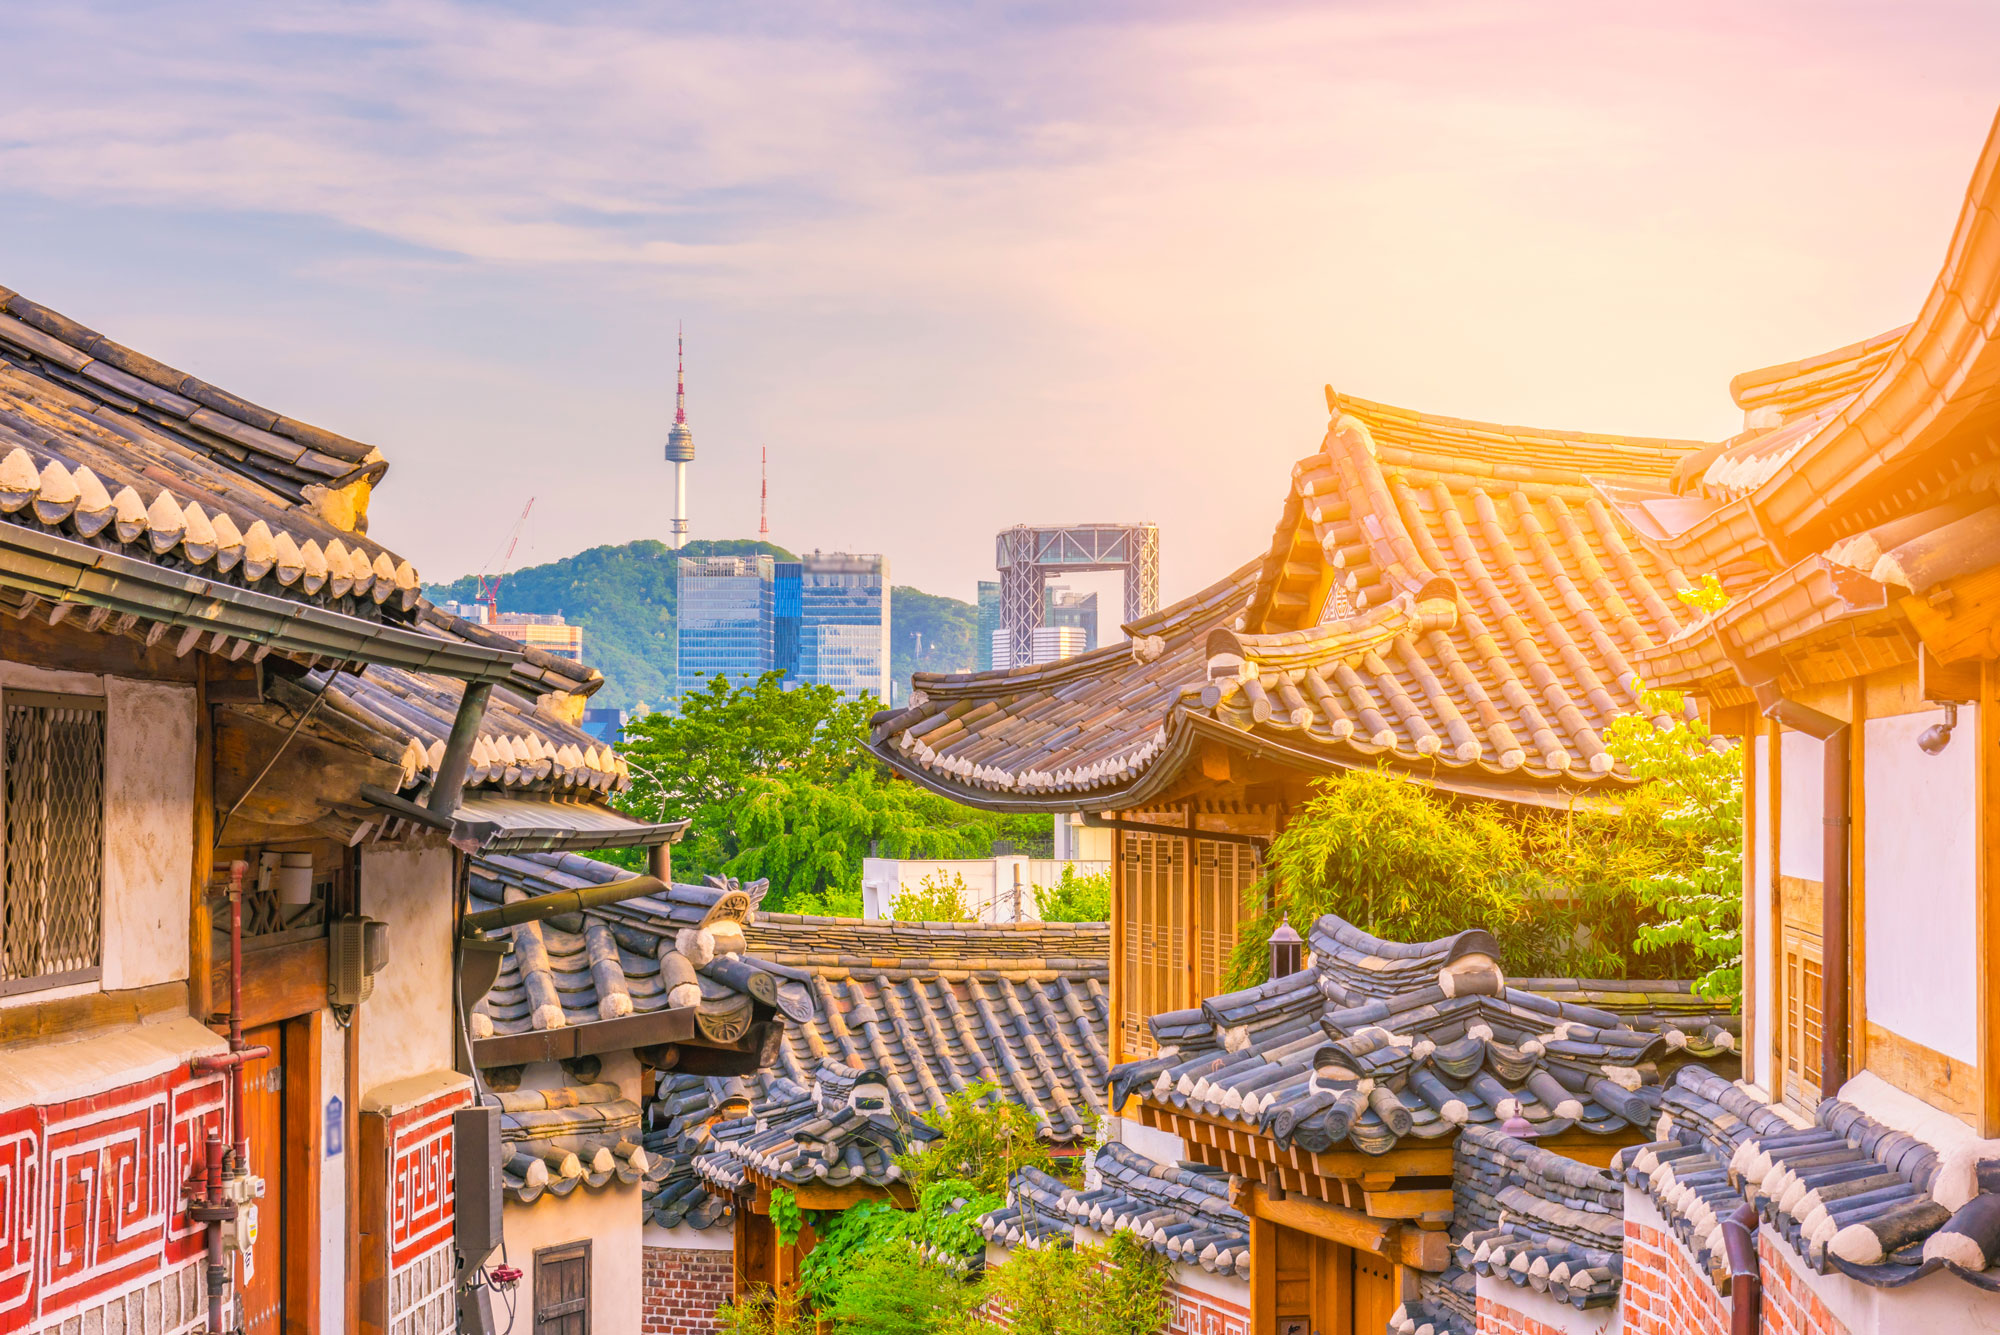 view of traditional and city buildings Seoul, Korea